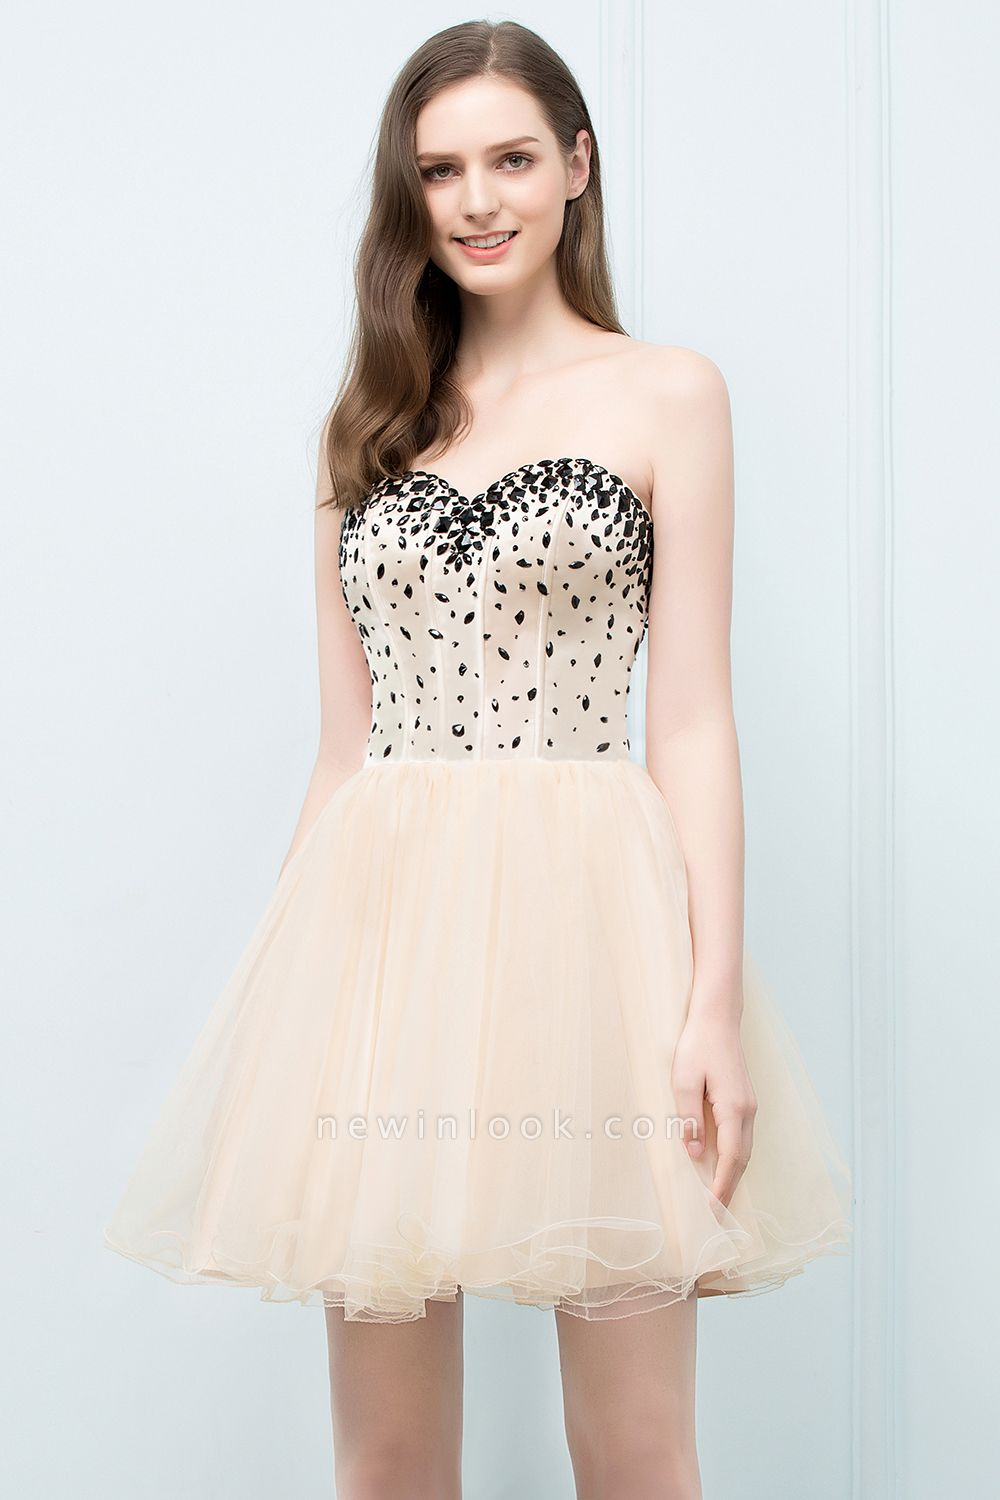 SIBYL | Quinceanera Short Sweetheart Strapless Tulle Dama Dresses with Crystals